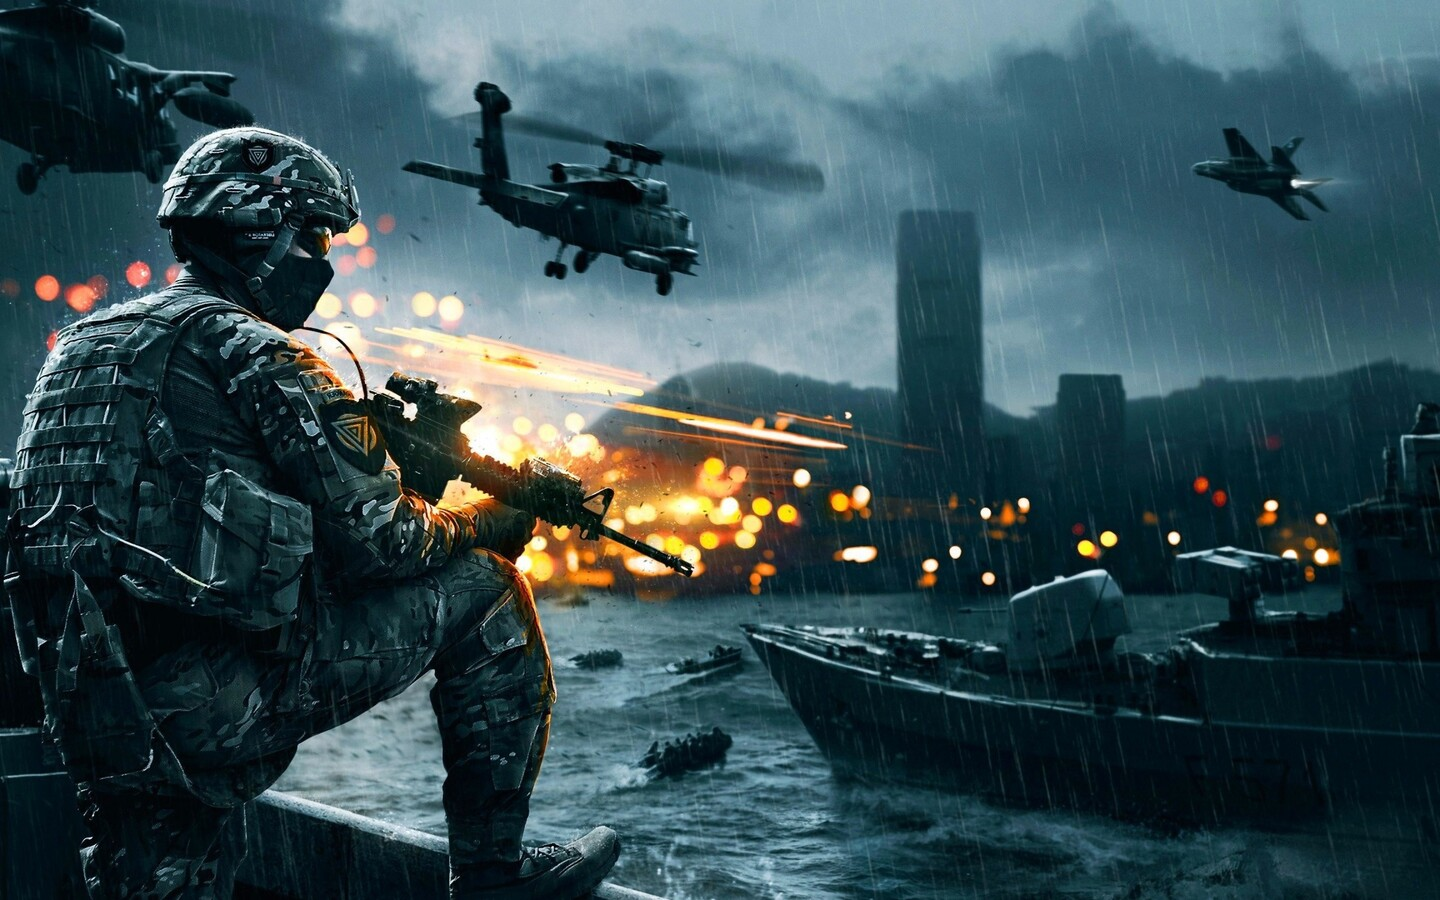 Download Wallpaper 1280x1280 Battlefield 4 Game Ea: 1440x900 Battlefield 4 1440x900 Resolution HD 4k